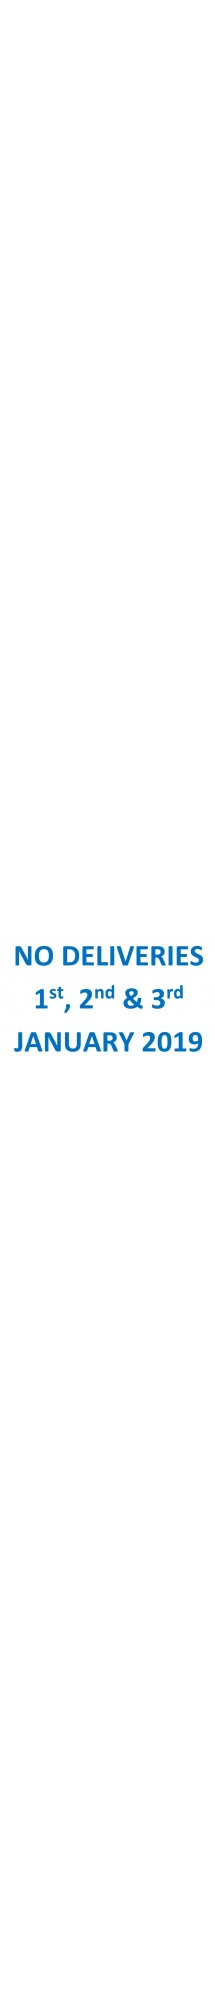 No Deliveries Jan